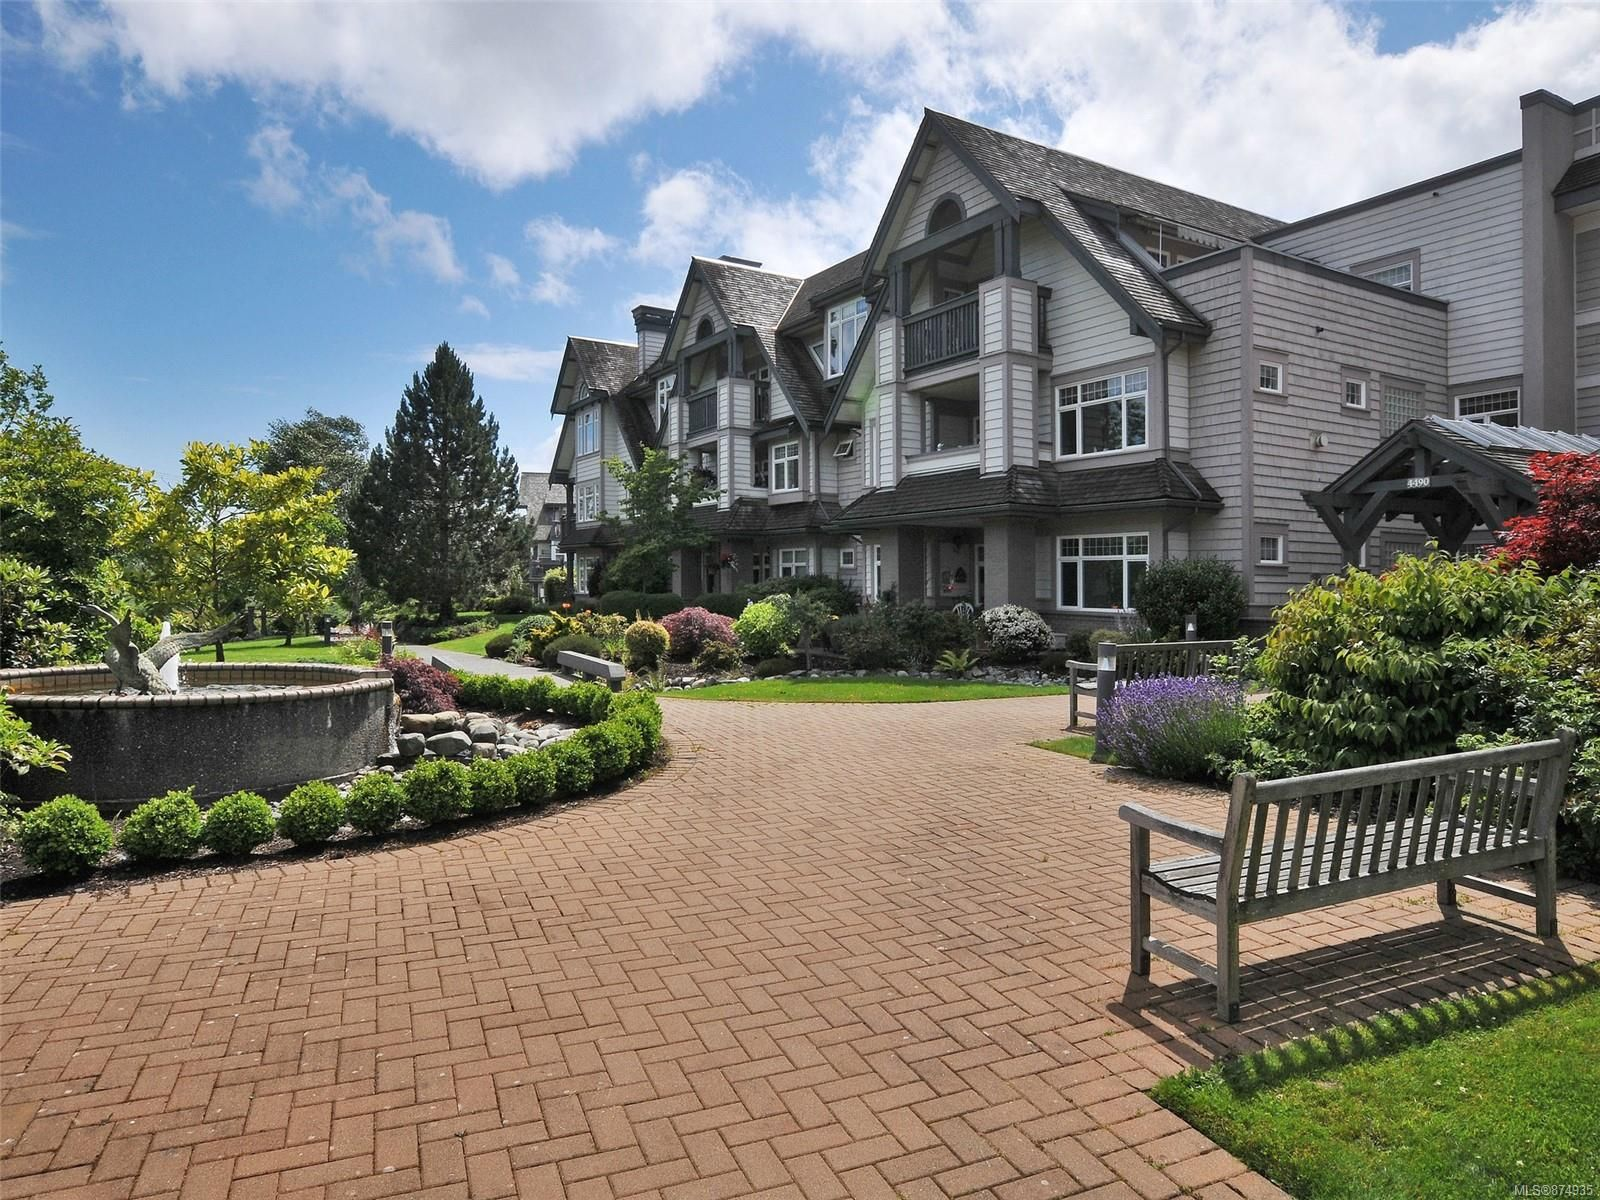 Main Photo: 334 4490 Chatterton Way in : SE Broadmead Condo for sale (Saanich East)  : MLS®# 874935